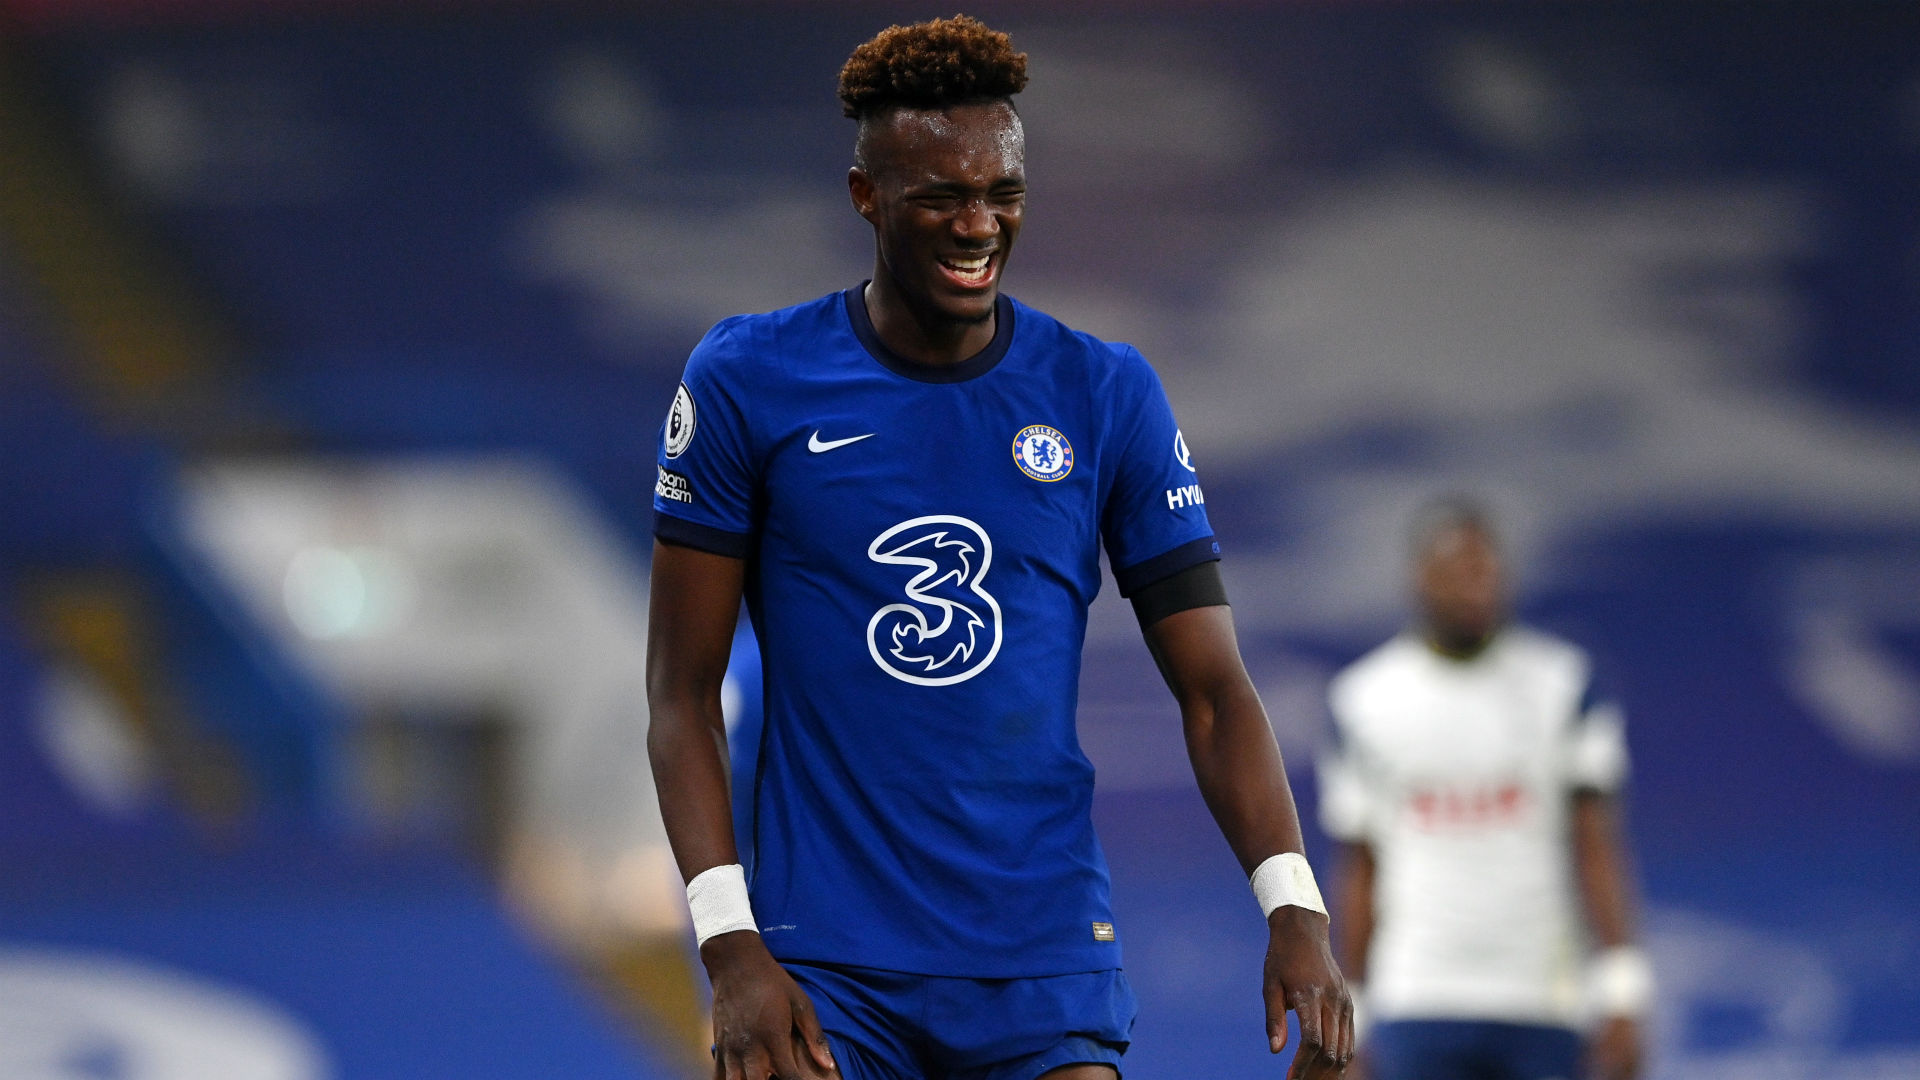 Tuchel plans to push Abraham but how does striker compare to Giroud and Werner?